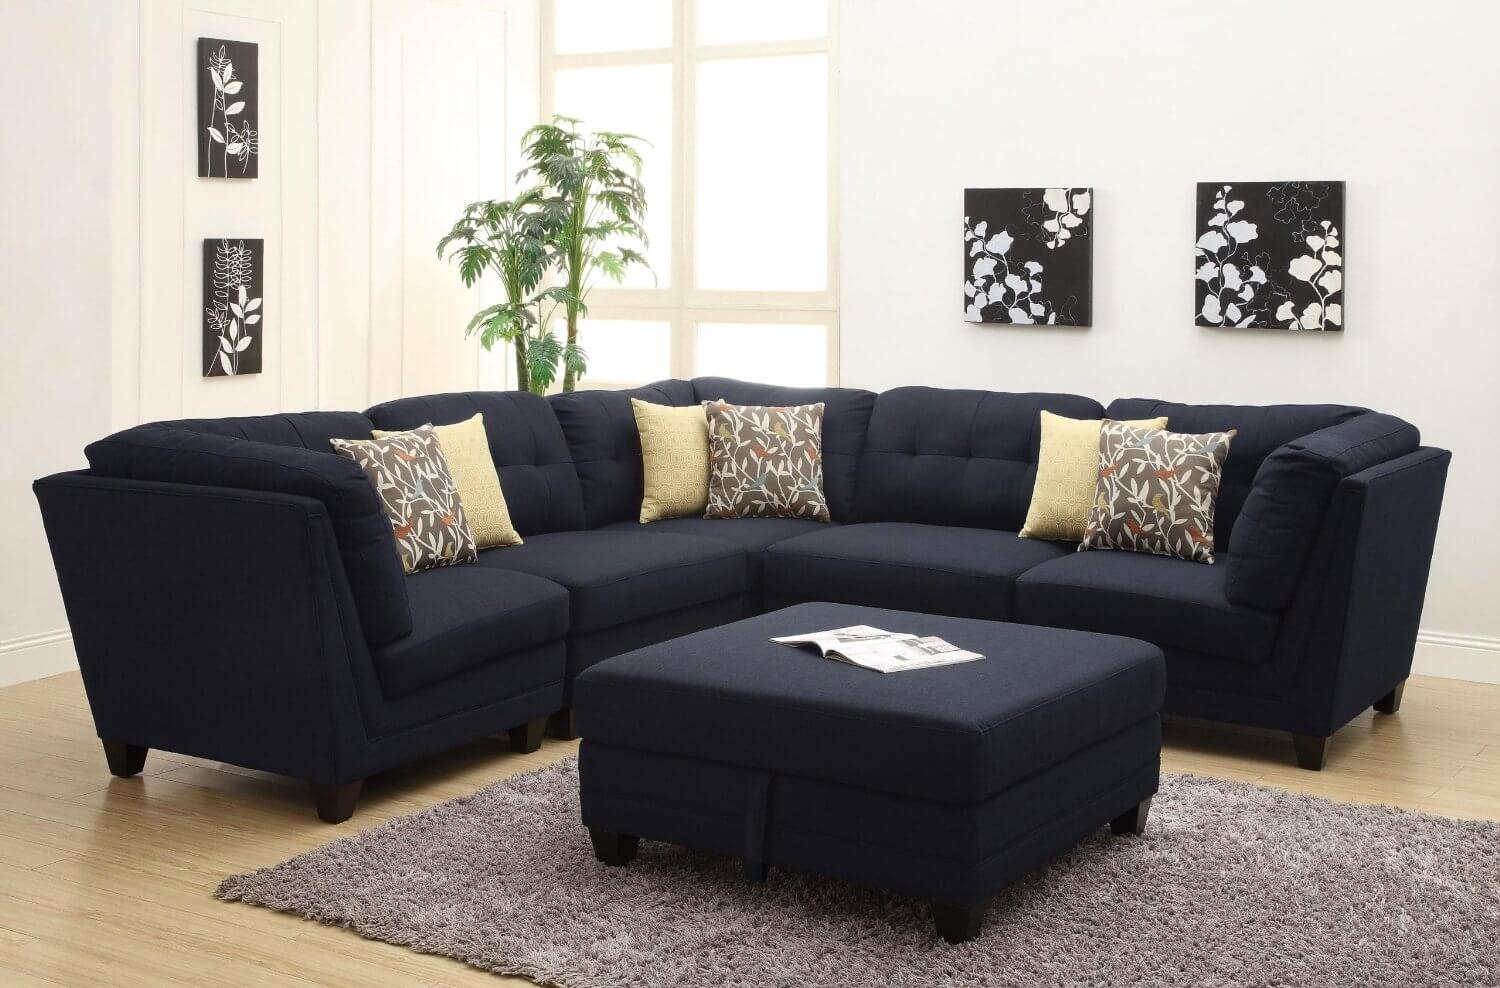 100 Beautiful Sectional Sofas Under 1000 Regarding Durable Sectional Sofa (View 9 of 15)